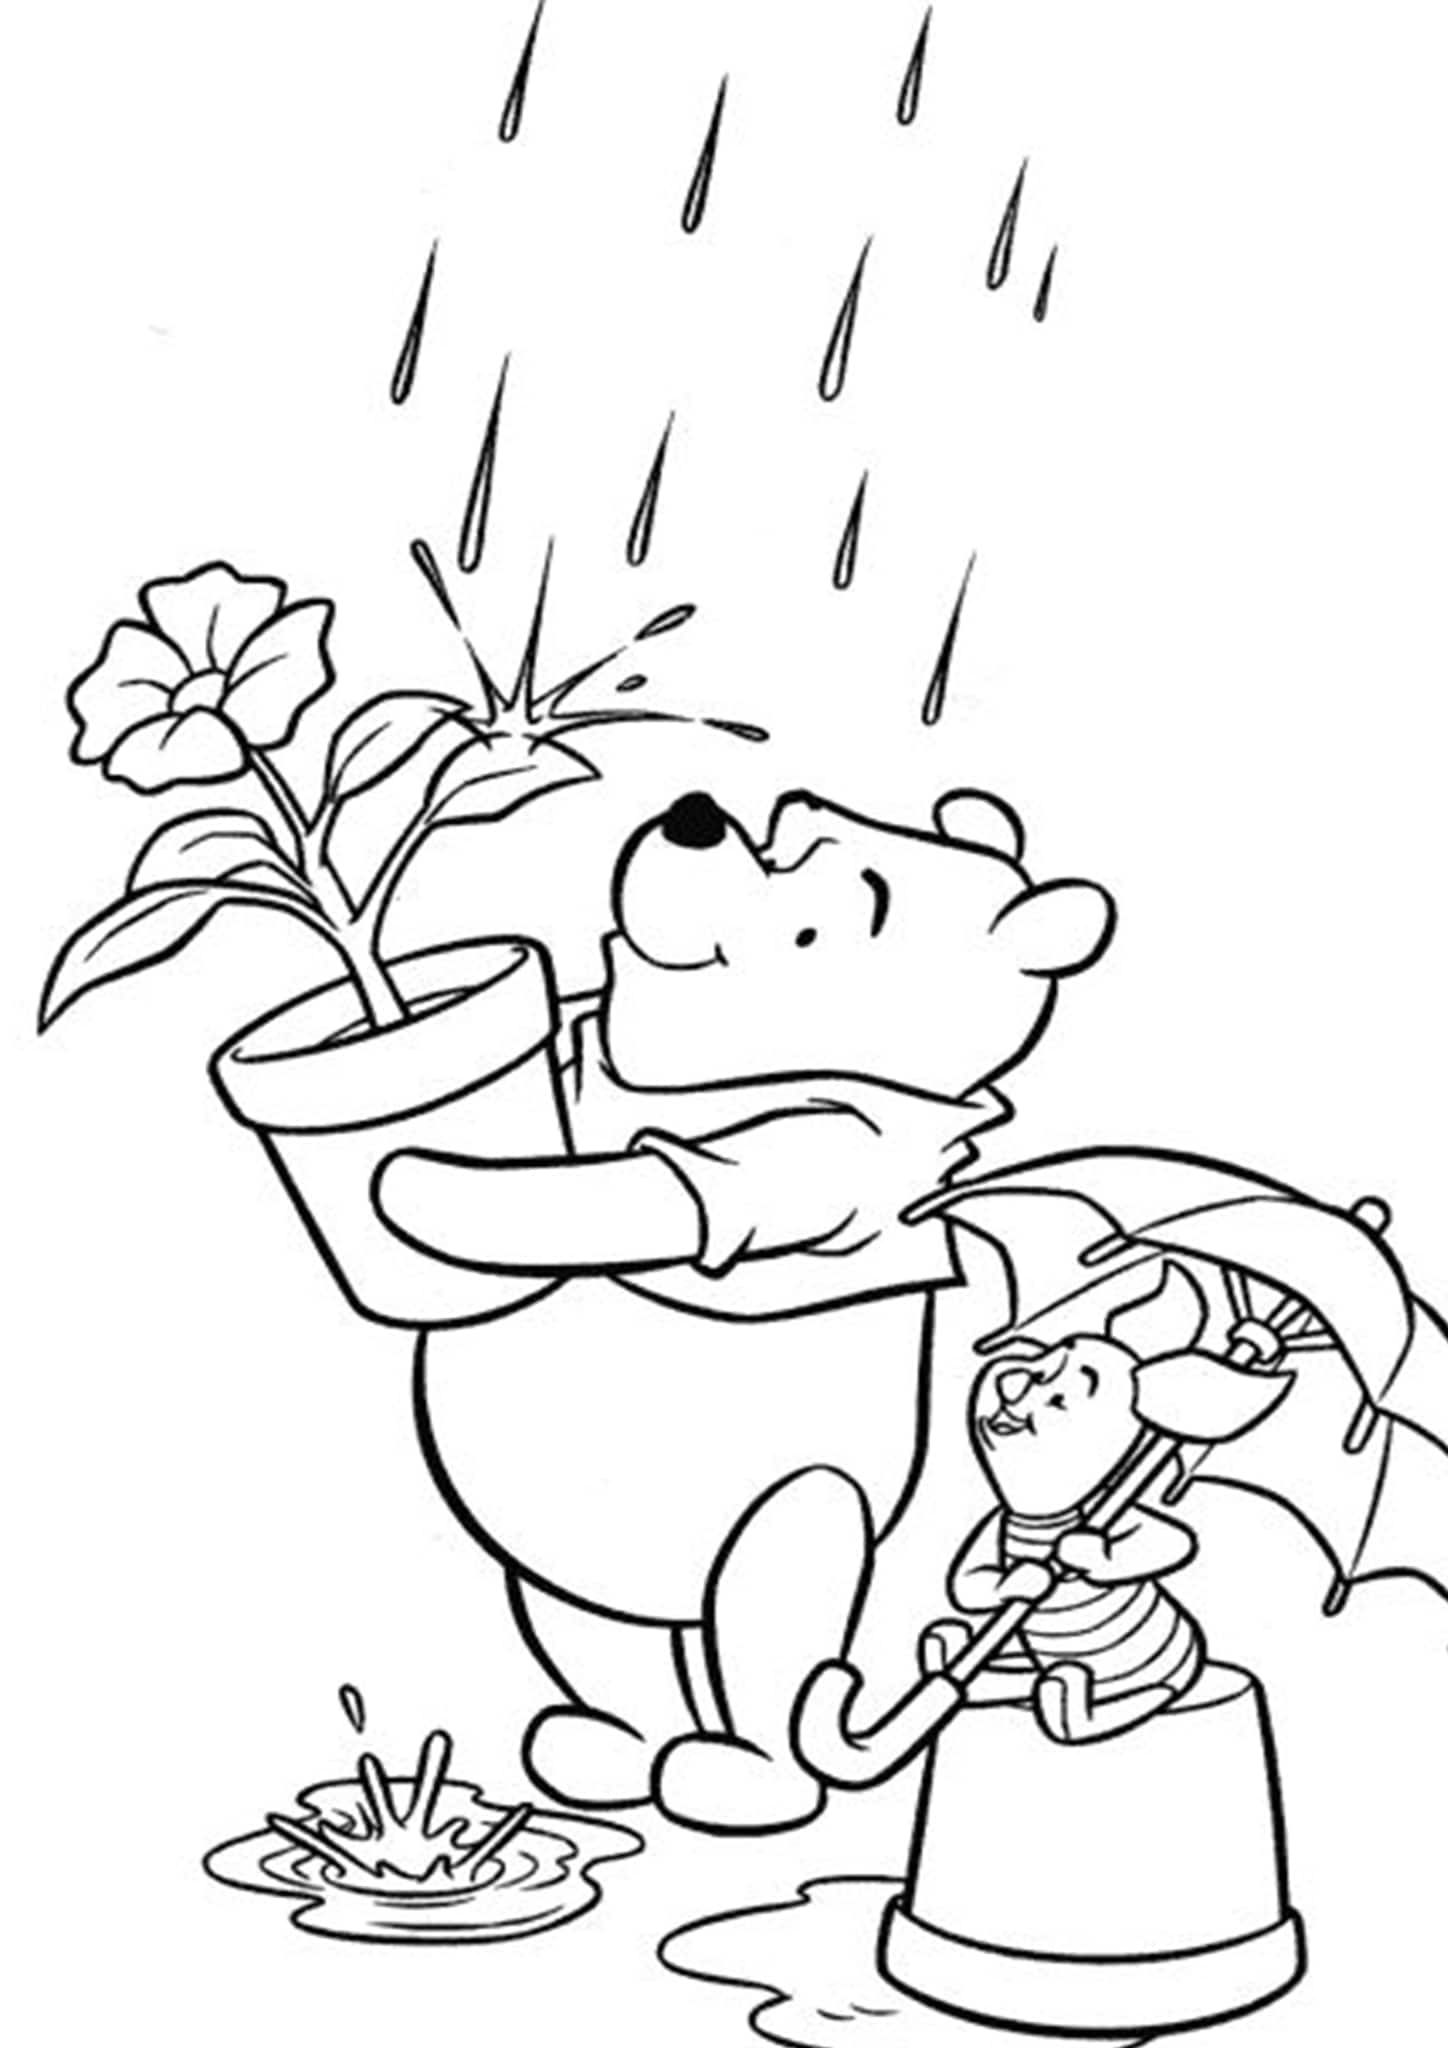 Free Easy To Print Winnie The Pooh Coloring Pages Cartoon Coloring Pages Disney Coloring Pages Disney Coloring Sheets